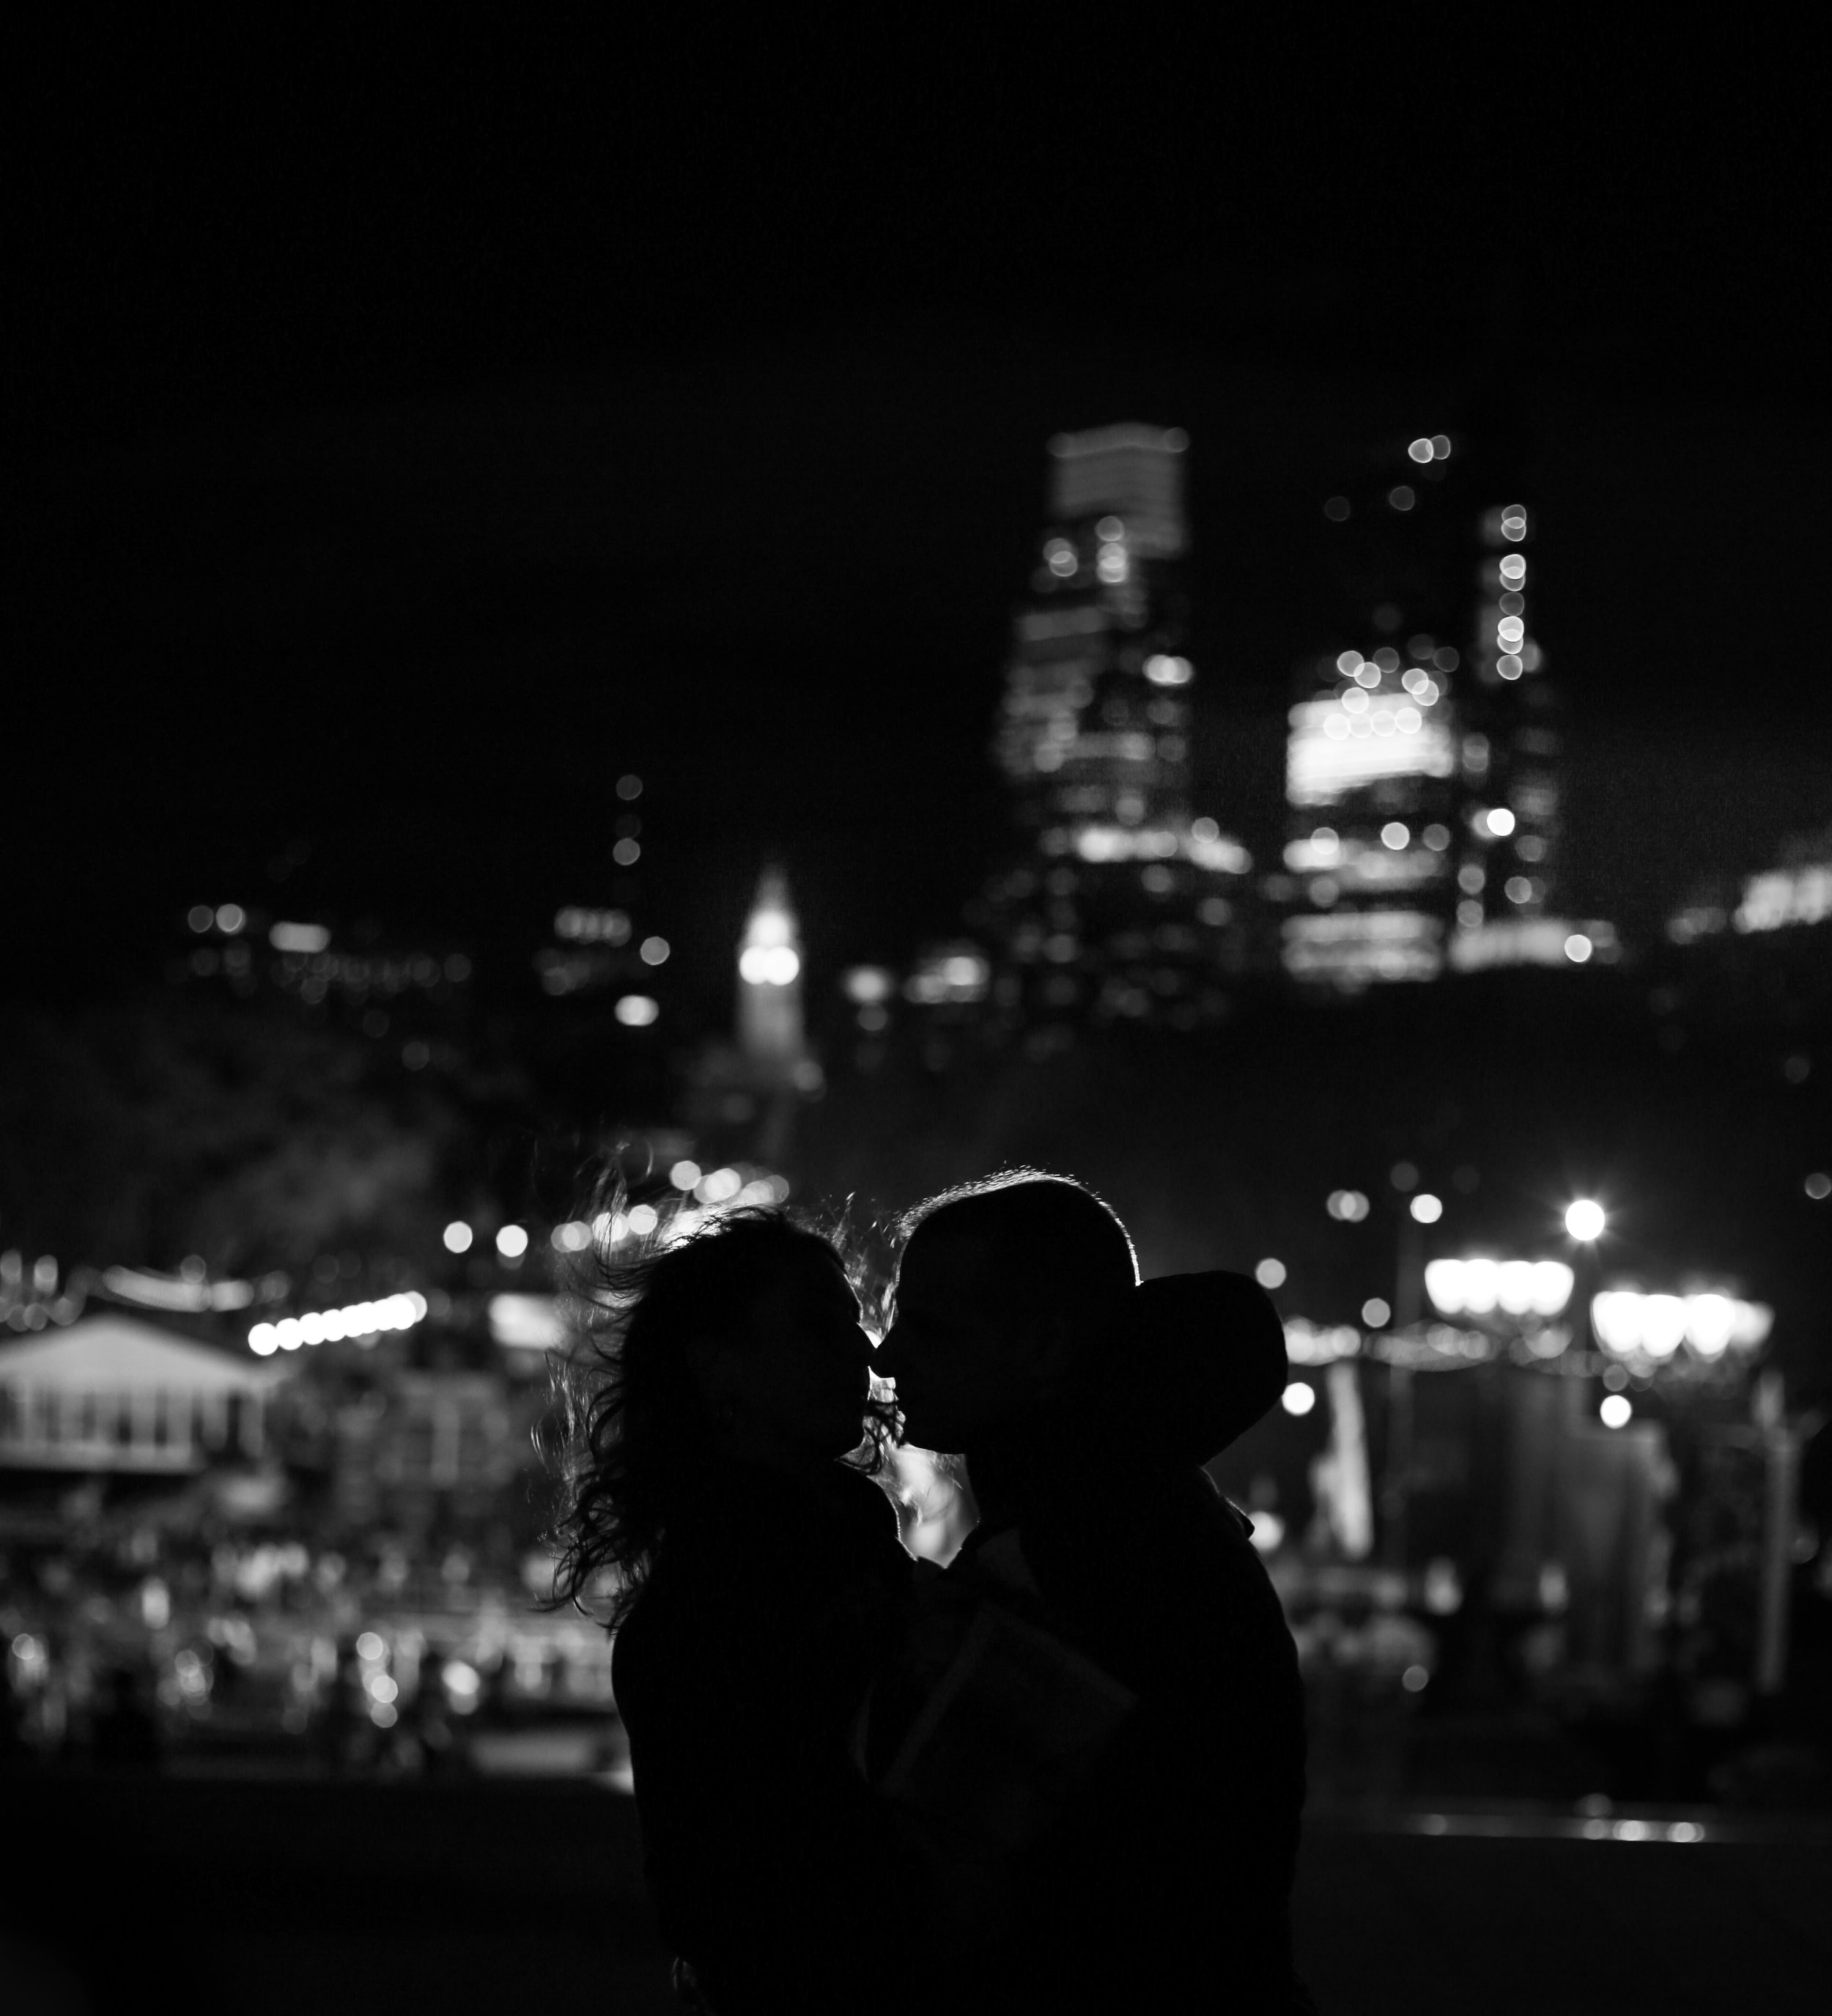 Night philadelphia skyline engagement